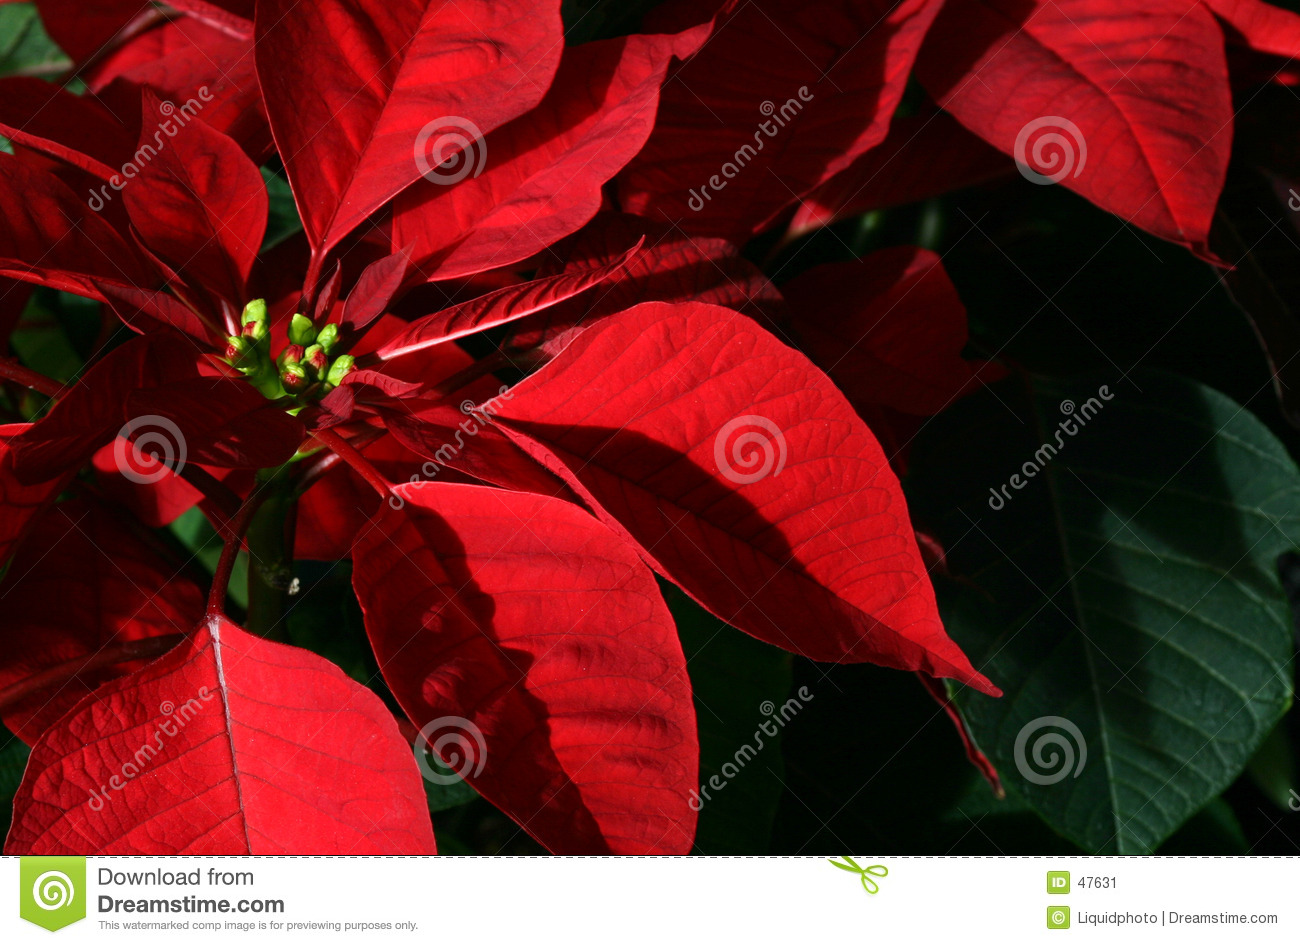 Download Poinsettia stock image. Image of holiday, poinsettia, bloom - 47631